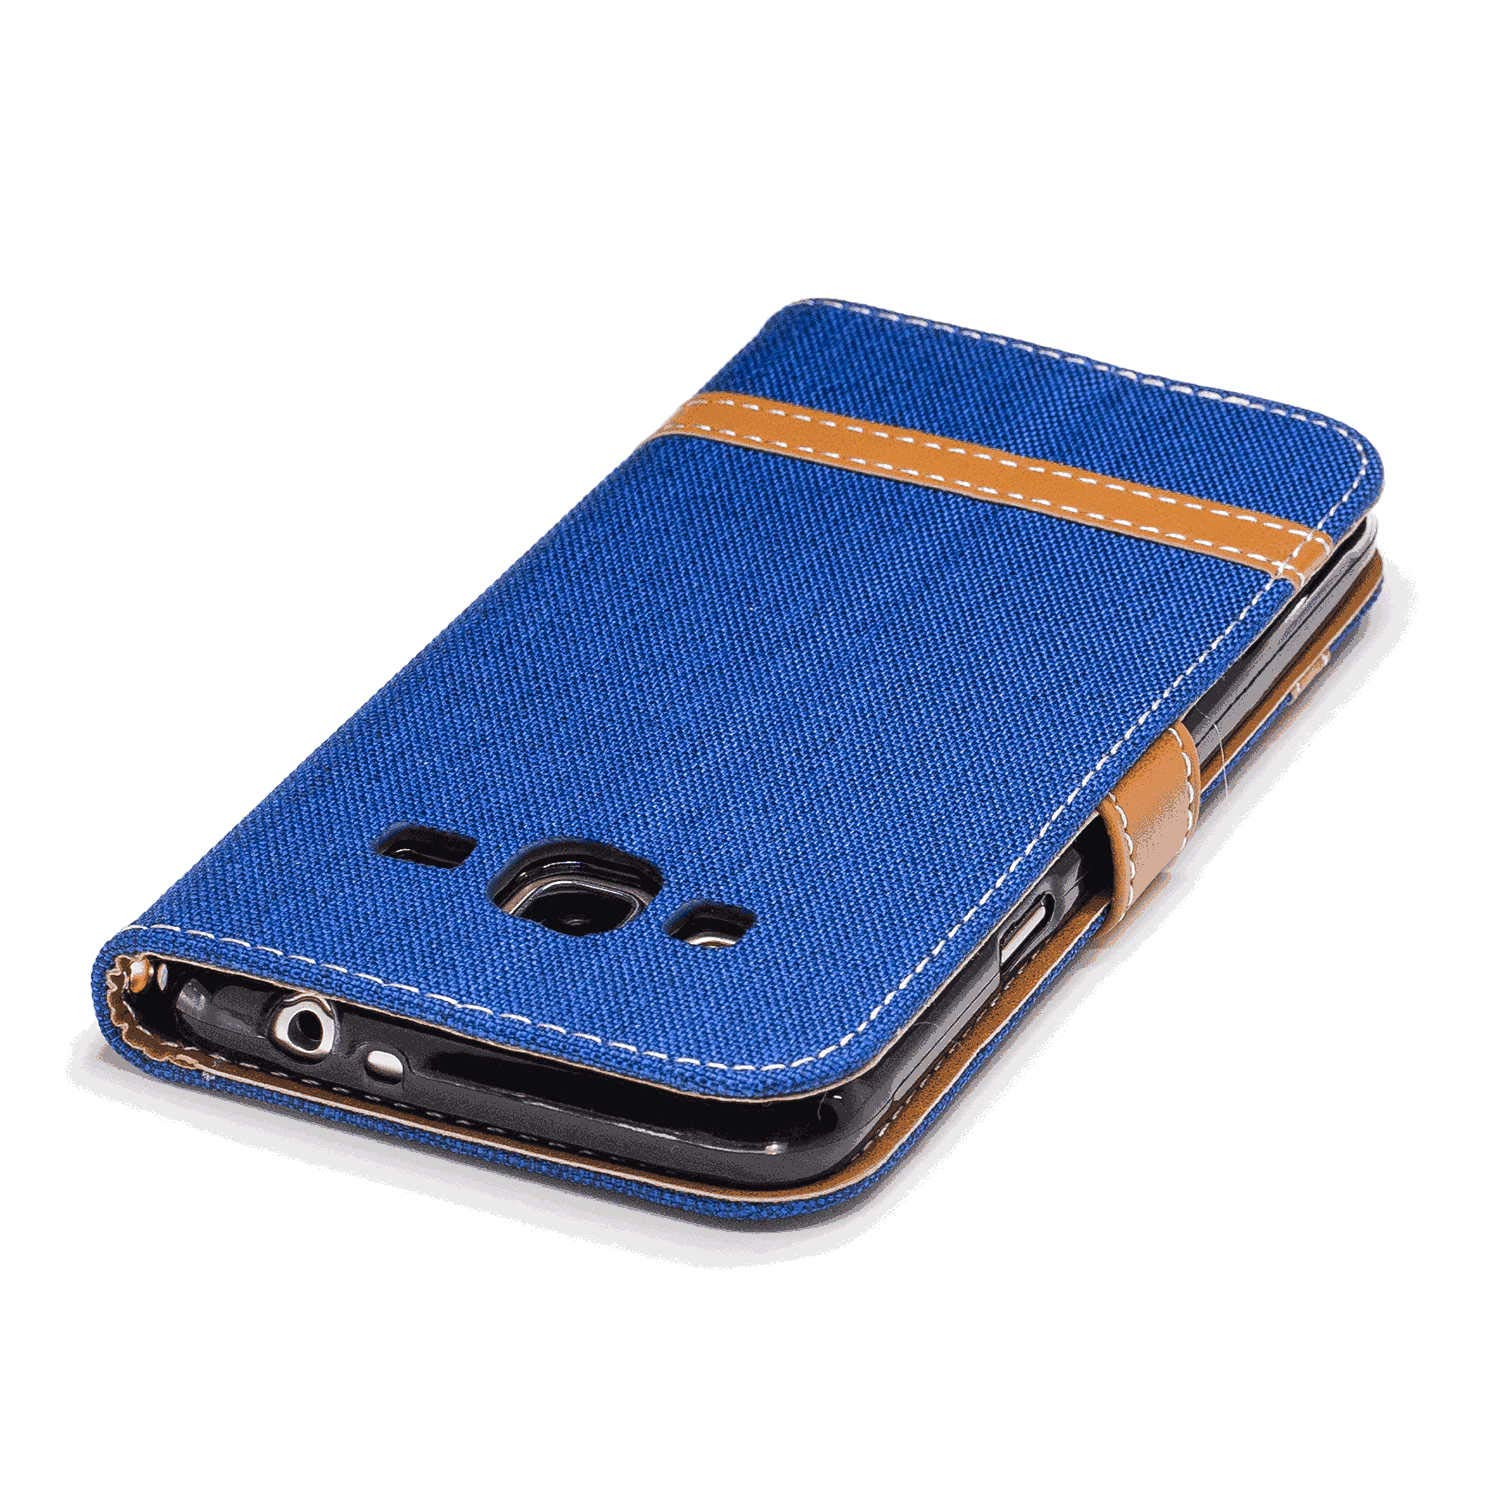 Cover for Huawei P10 LITE Leather Card Holders Wallet case Extra-Protective Business Kickstand with Free Waterproof-Bag Gripping Huawei P10 LITE Flip Case